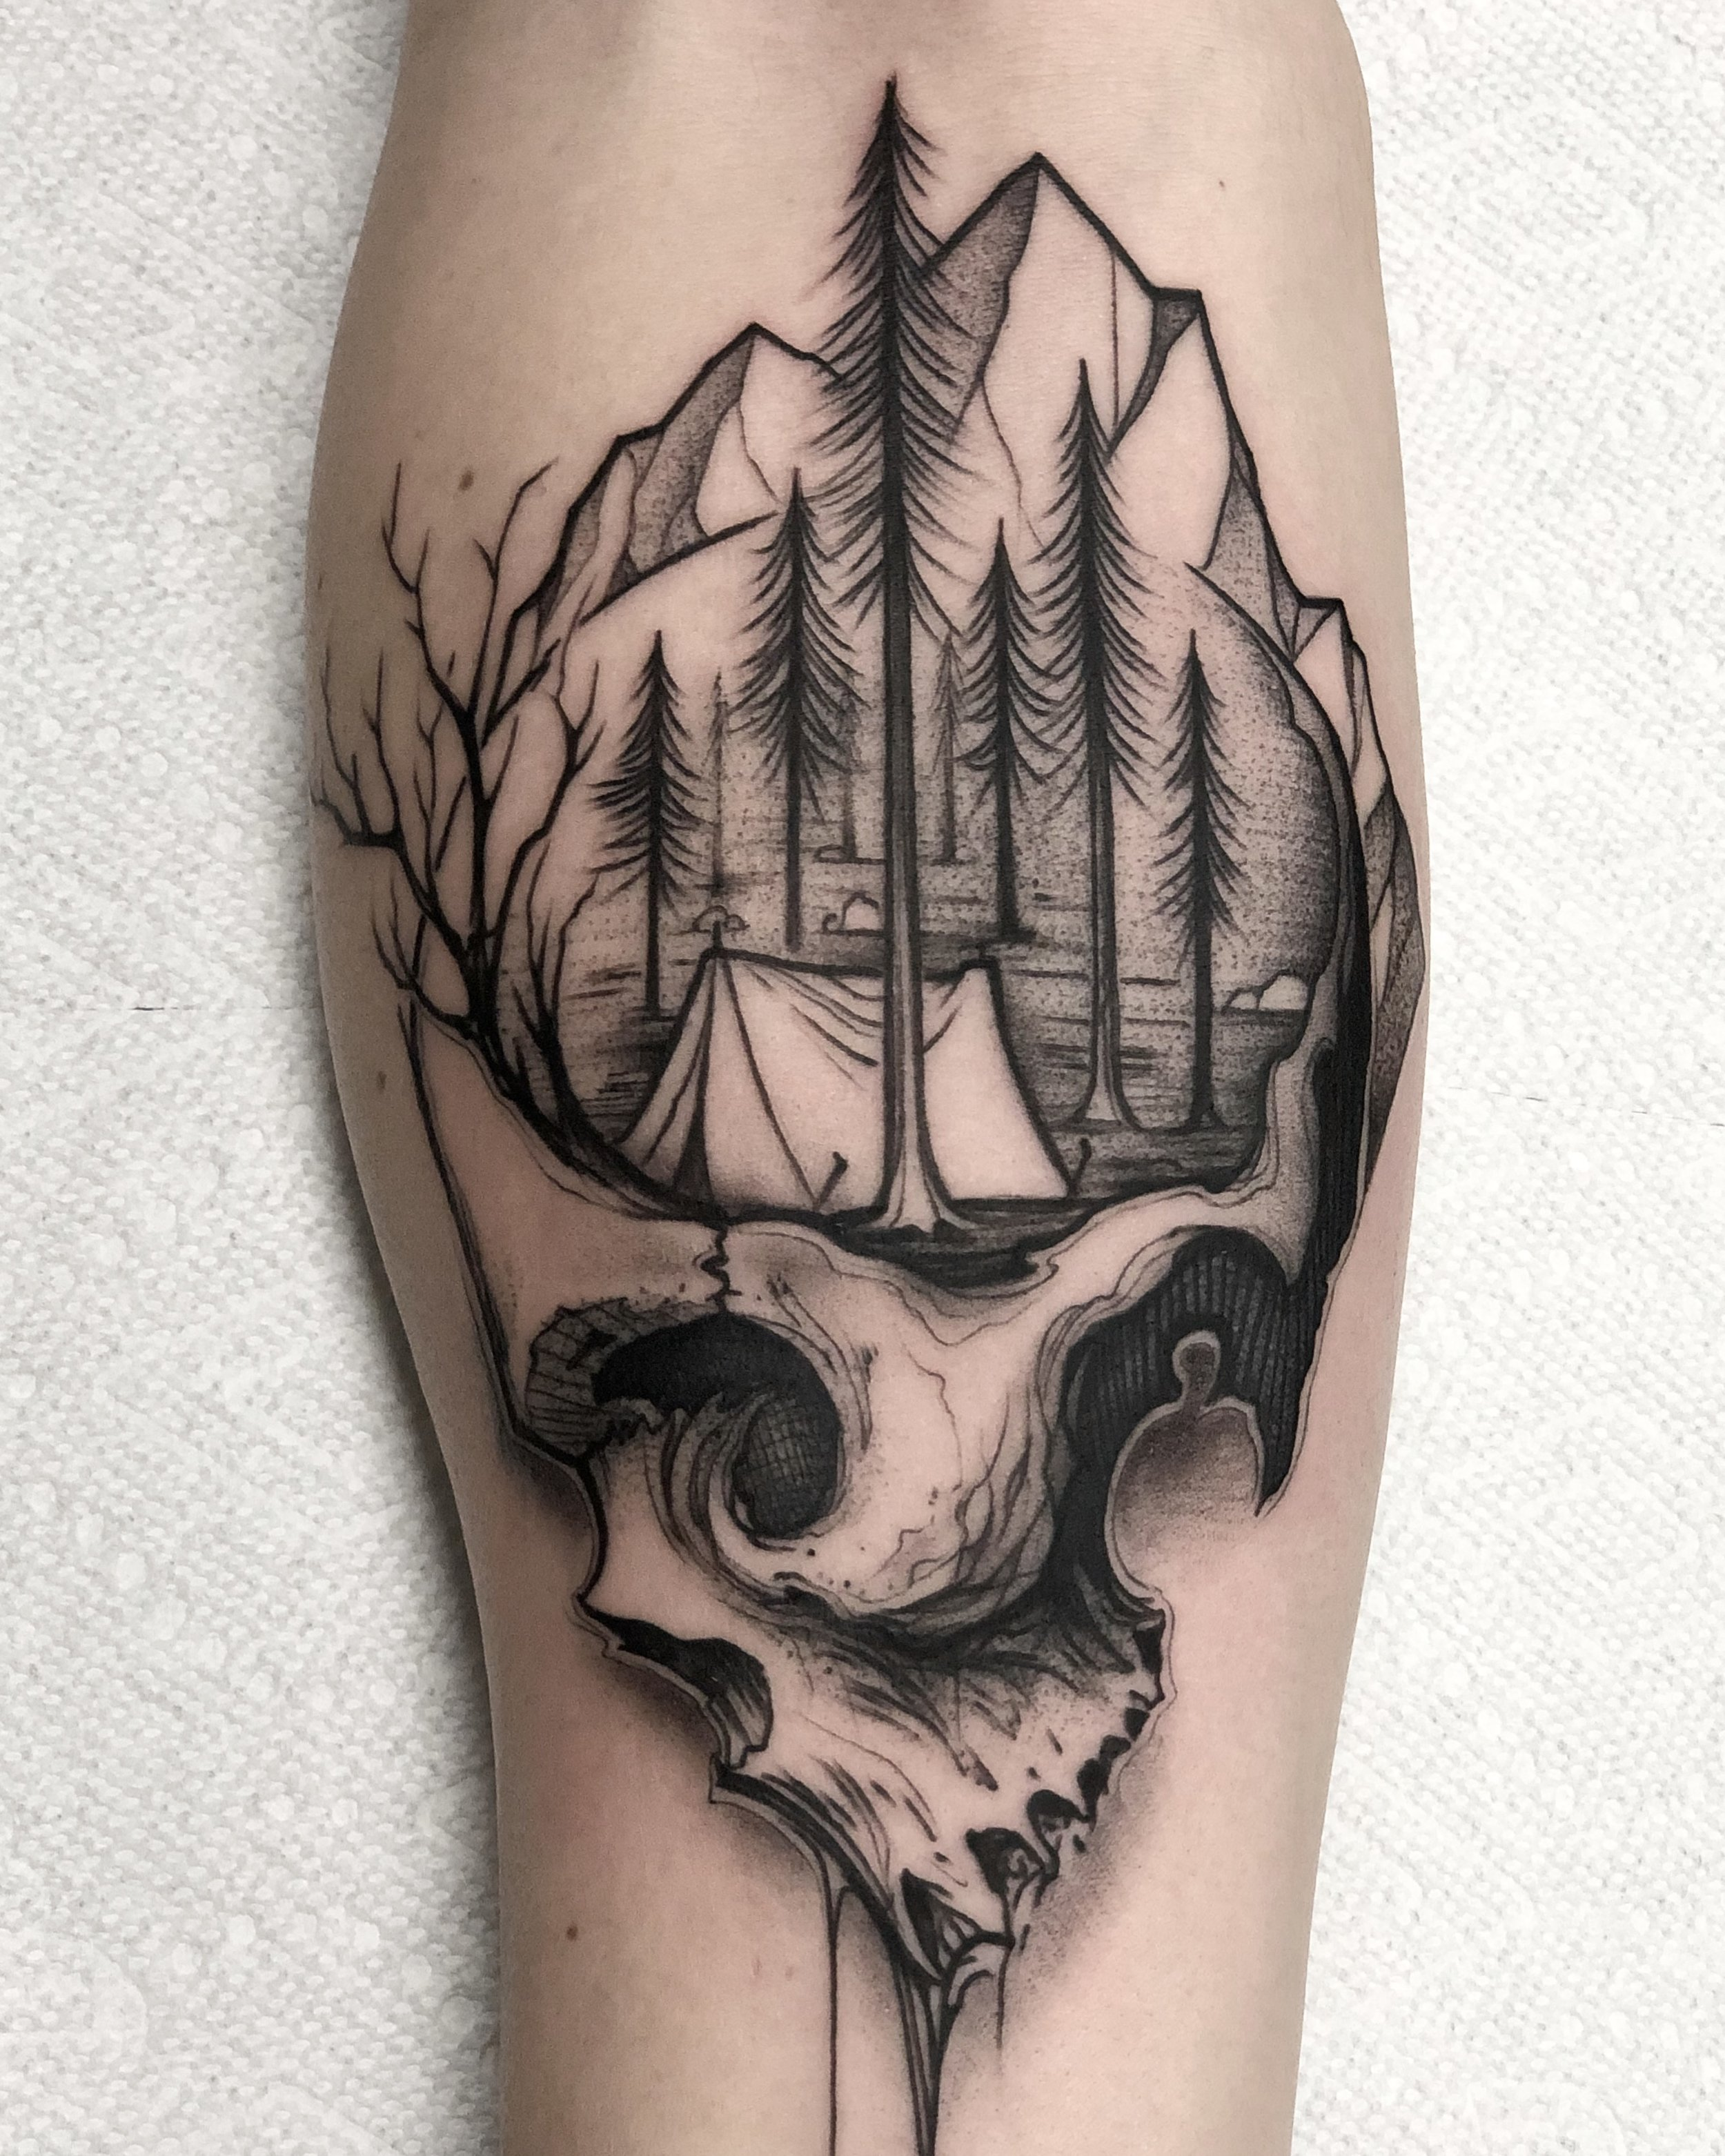 Blackwork Nature Landscape and Skull Tattoo by David Mushaney